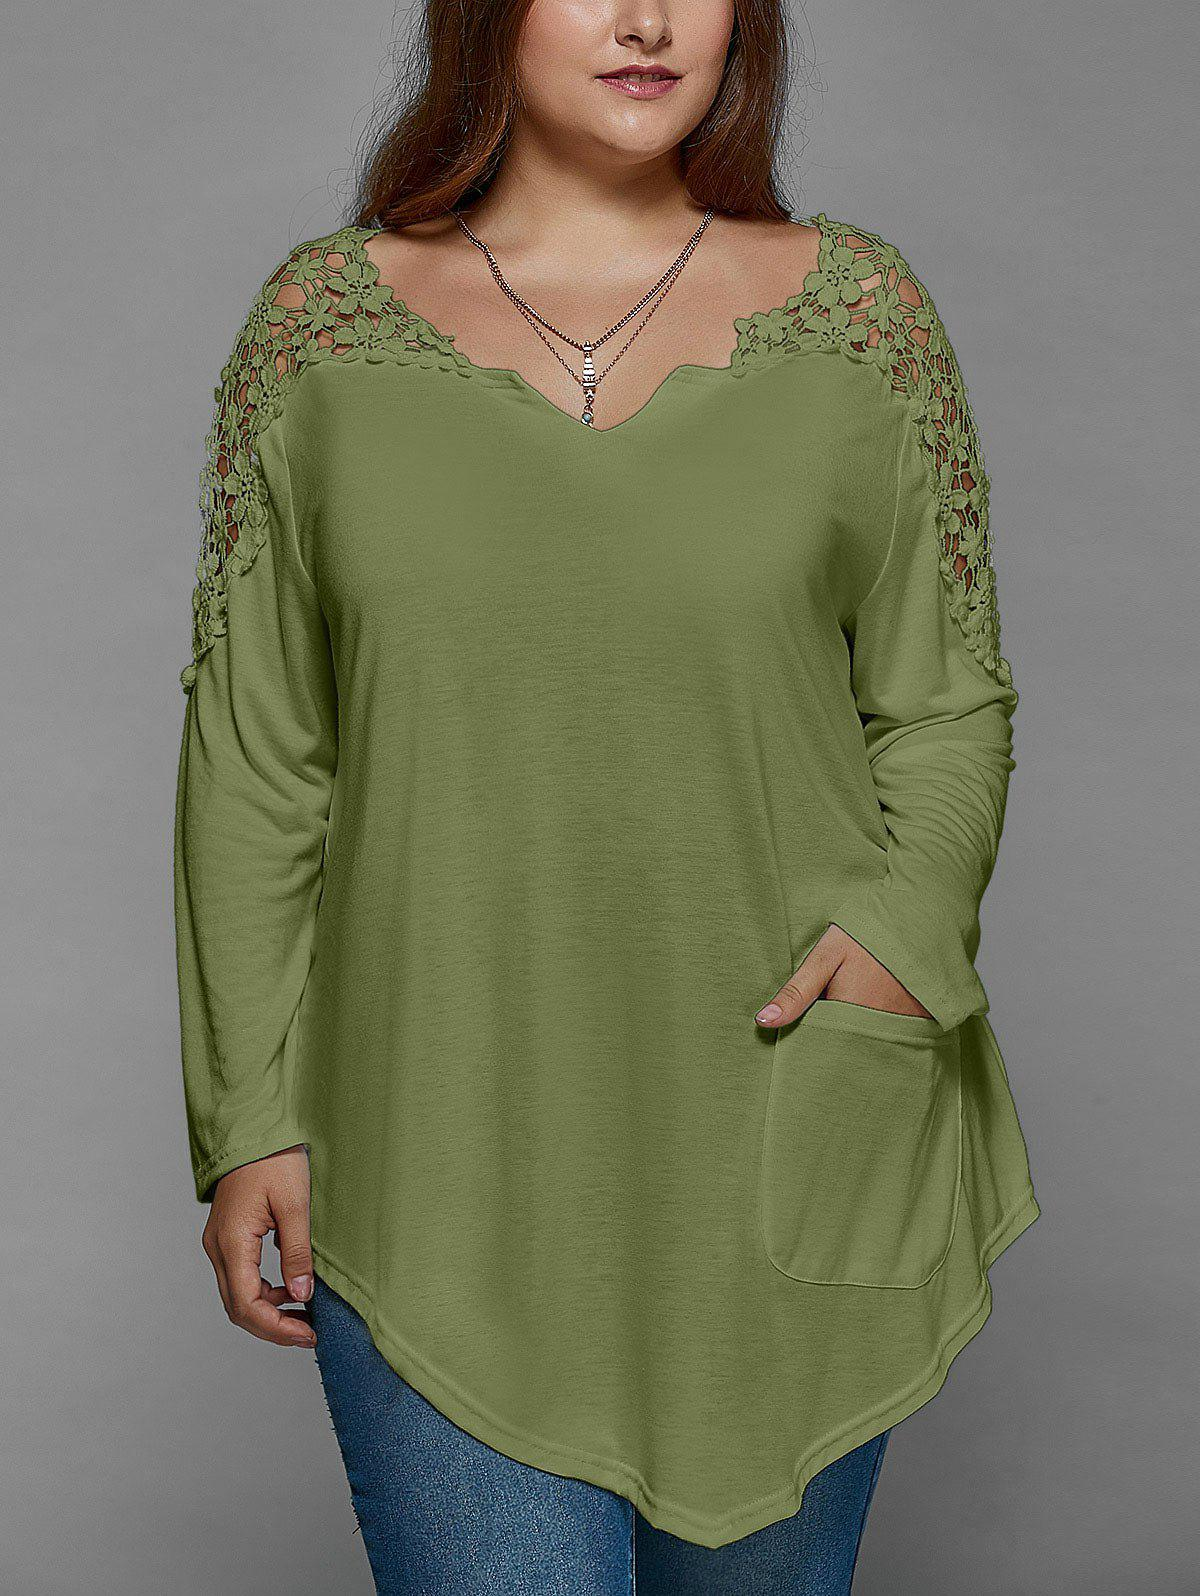 Plus Size Lace Insert Long Sleeve Tunic T-ShirtWOMEN<br><br>Size: XL; Color: OLIVE GREEN; Material: Lace,Polyester; Shirt Length: Regular; Sleeve Length: Full; Collar: V-Neck; Style: Fashion; Season: Fall,Spring; Pattern Type: Patchwork; Weight: 0.2200kg; Package Contents: 1 x T-Shirt;